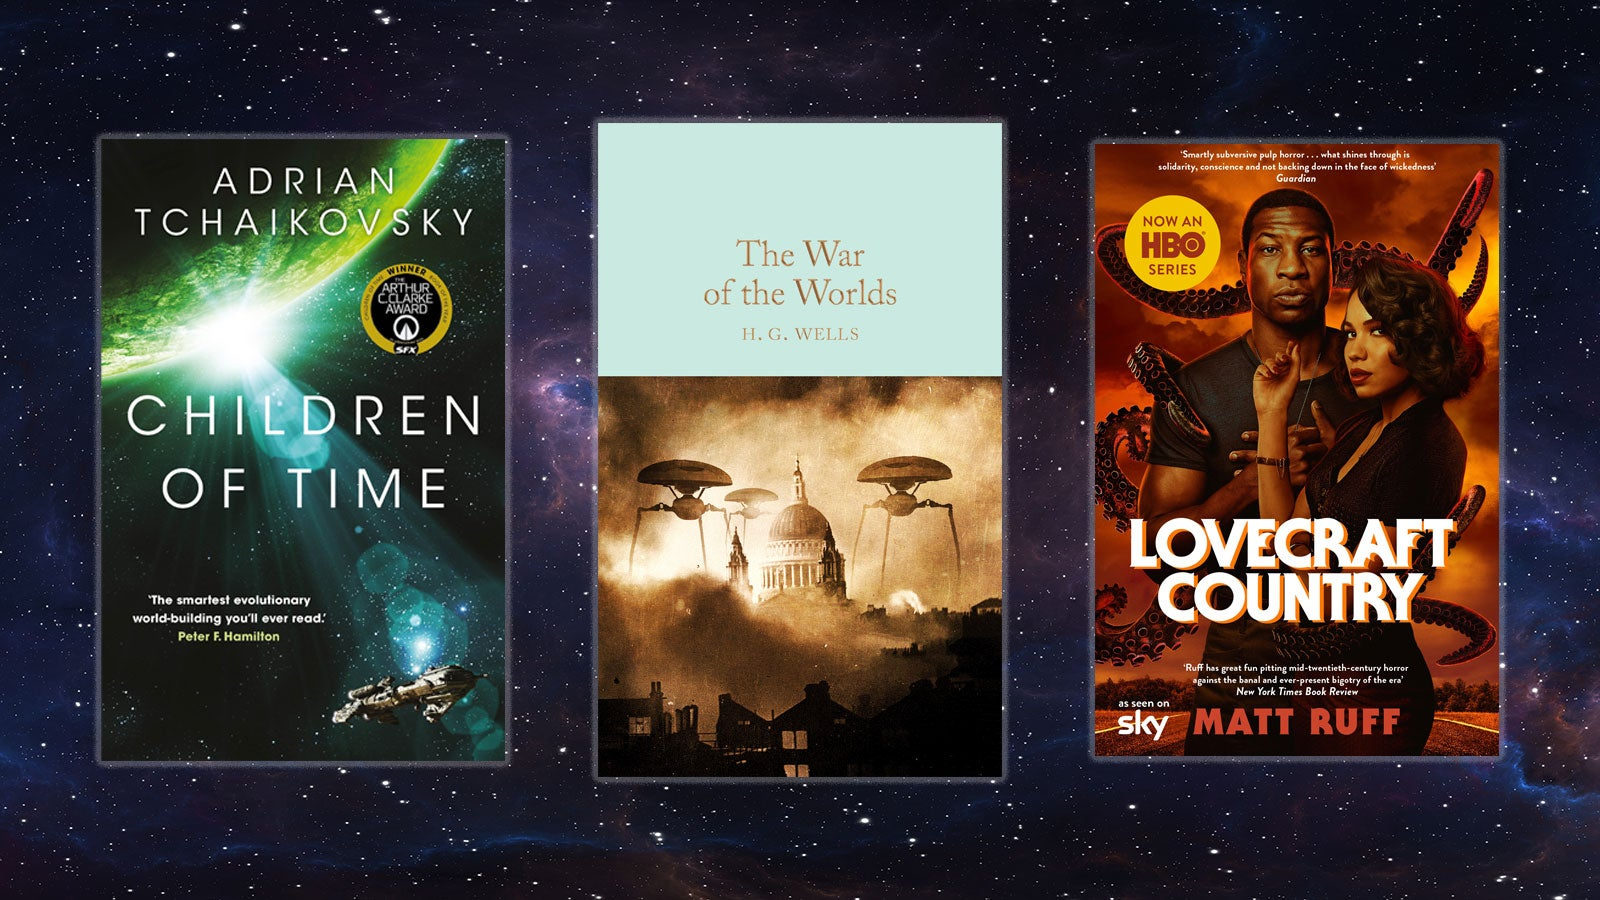 Children of Time, The War of the Worlds and Lovecraft Country book covers